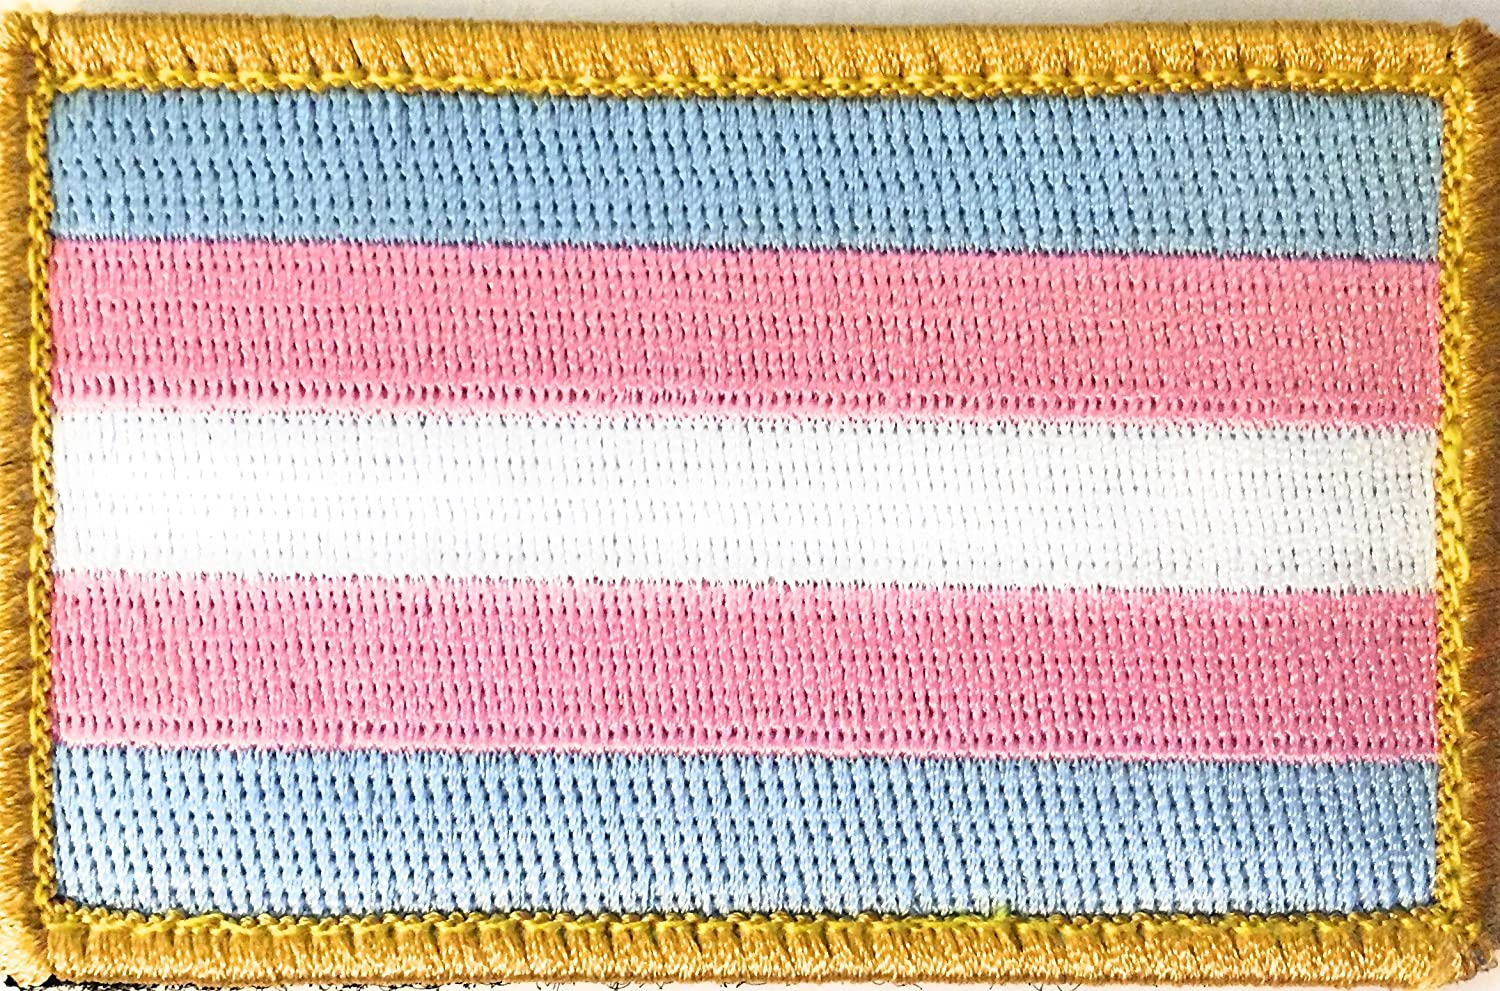 Small Transgender Flag Iron On or Sew On Patch 2.5 x 1.5 inch LGBTQ